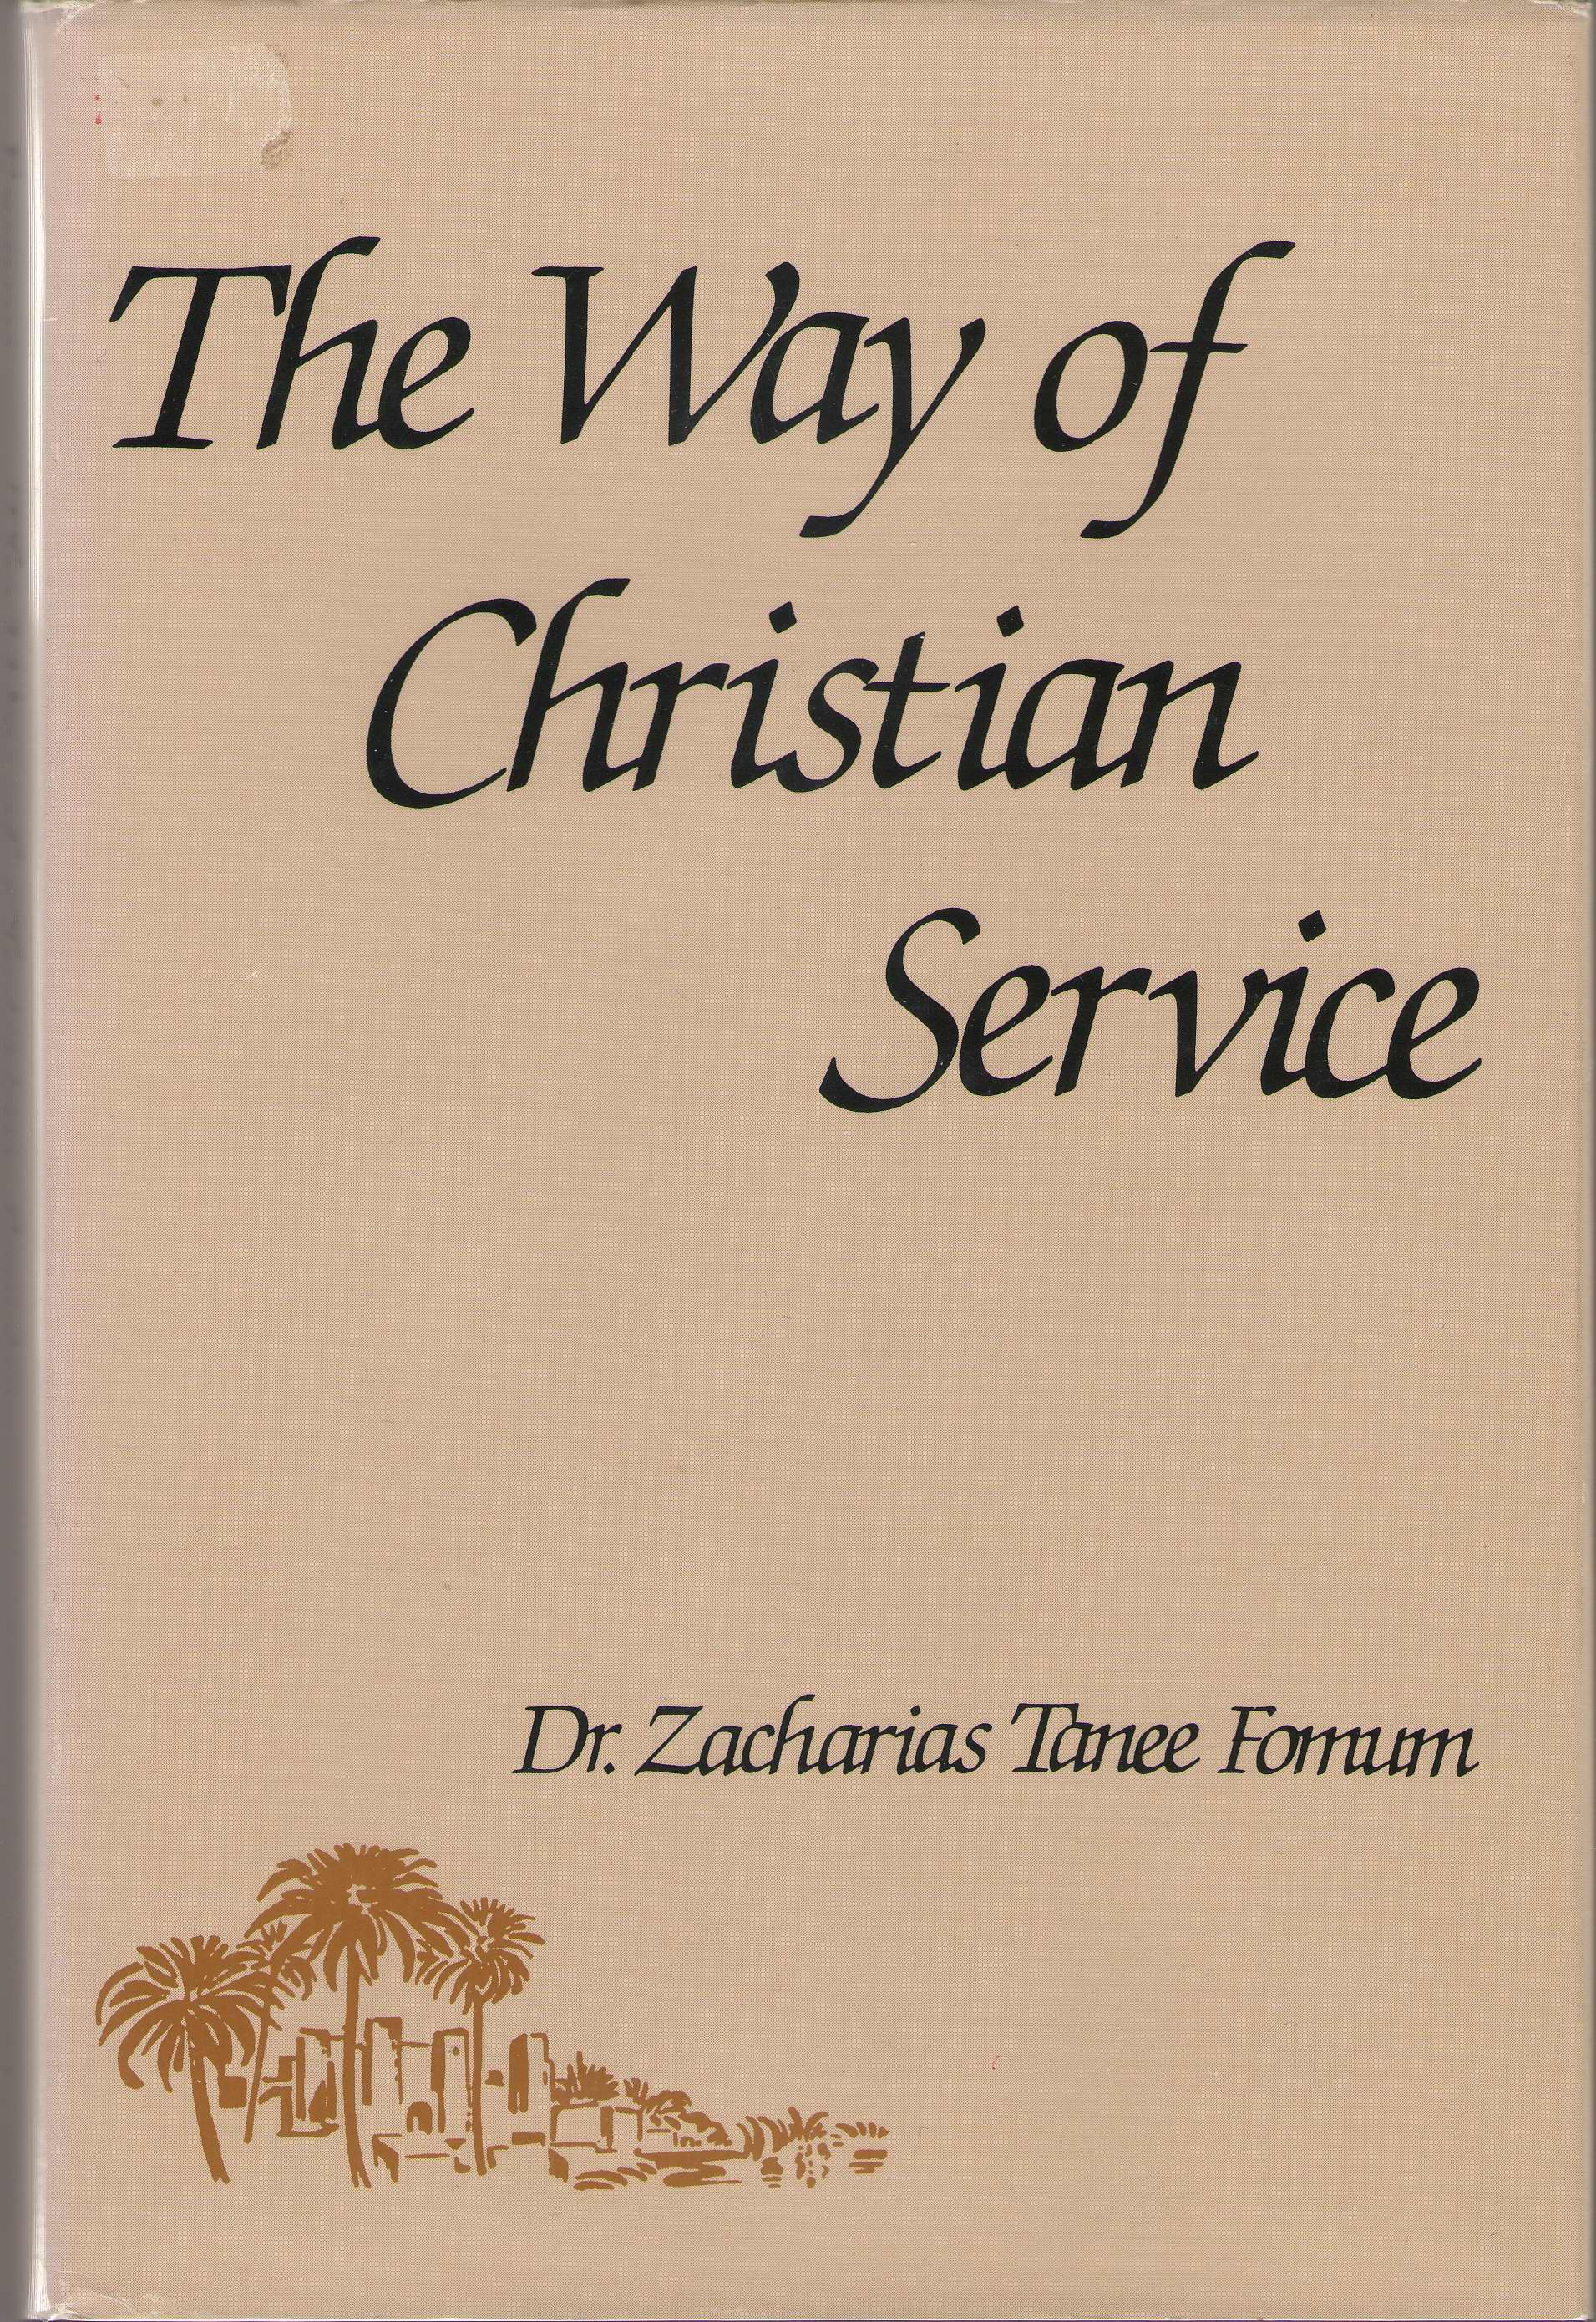 The Way Of Christian Service, Fomum, Zacharias T.